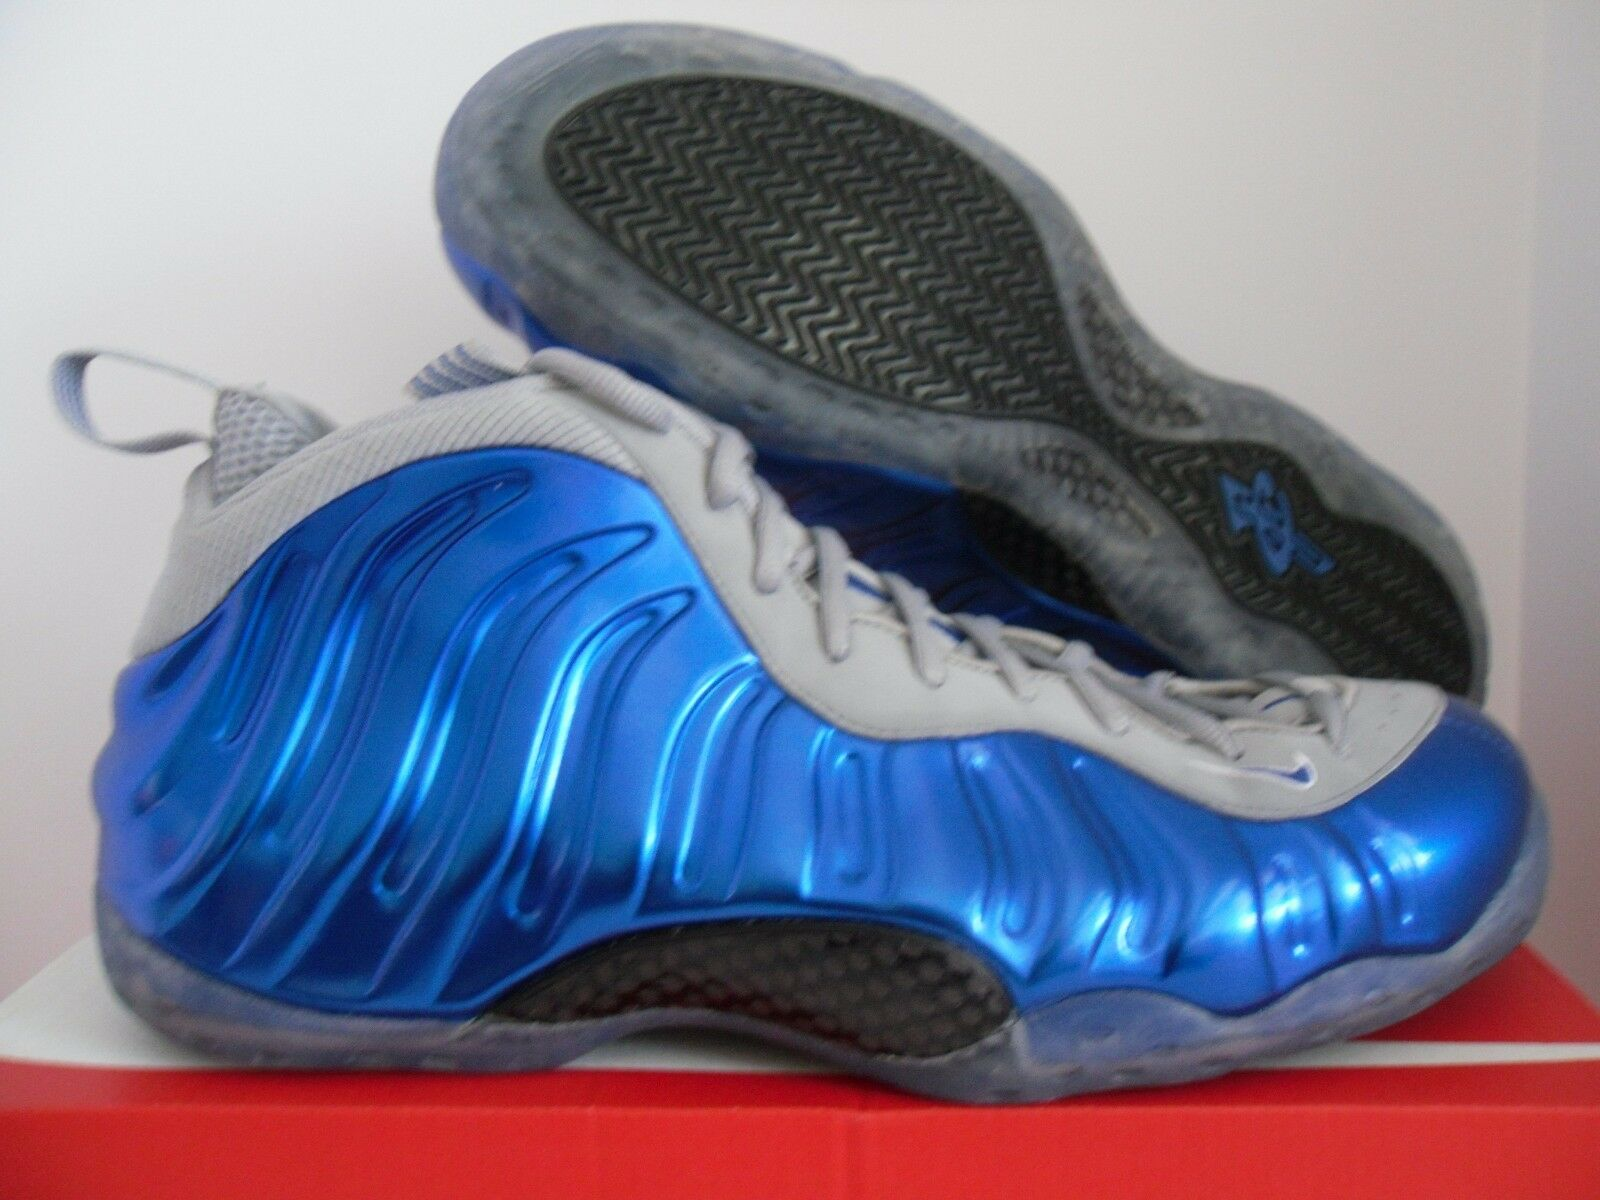 NIKE AIR FOAMPOSITE ONE SPORT 16 ROYAL Bleu-WOLF gris SZ 16 SPORT 3a258e